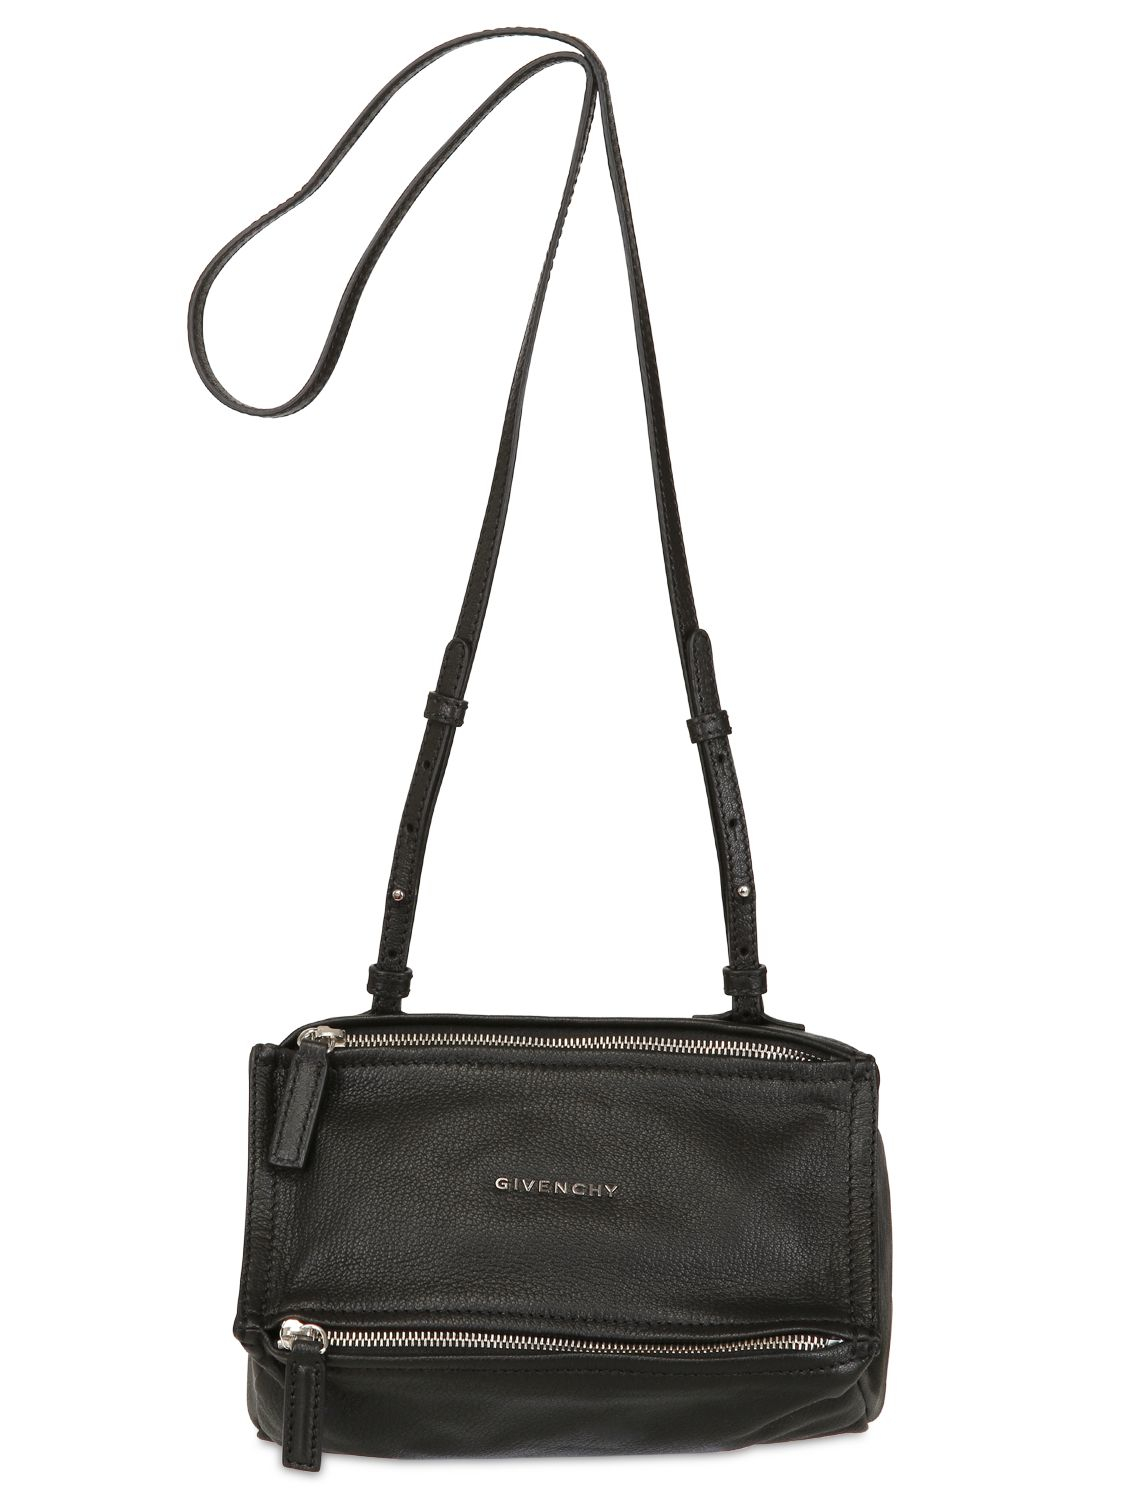 Givenchy Mini Bags. Givenchy Mini Pandora Leather Shoulder Bag in Black  6645a27276461